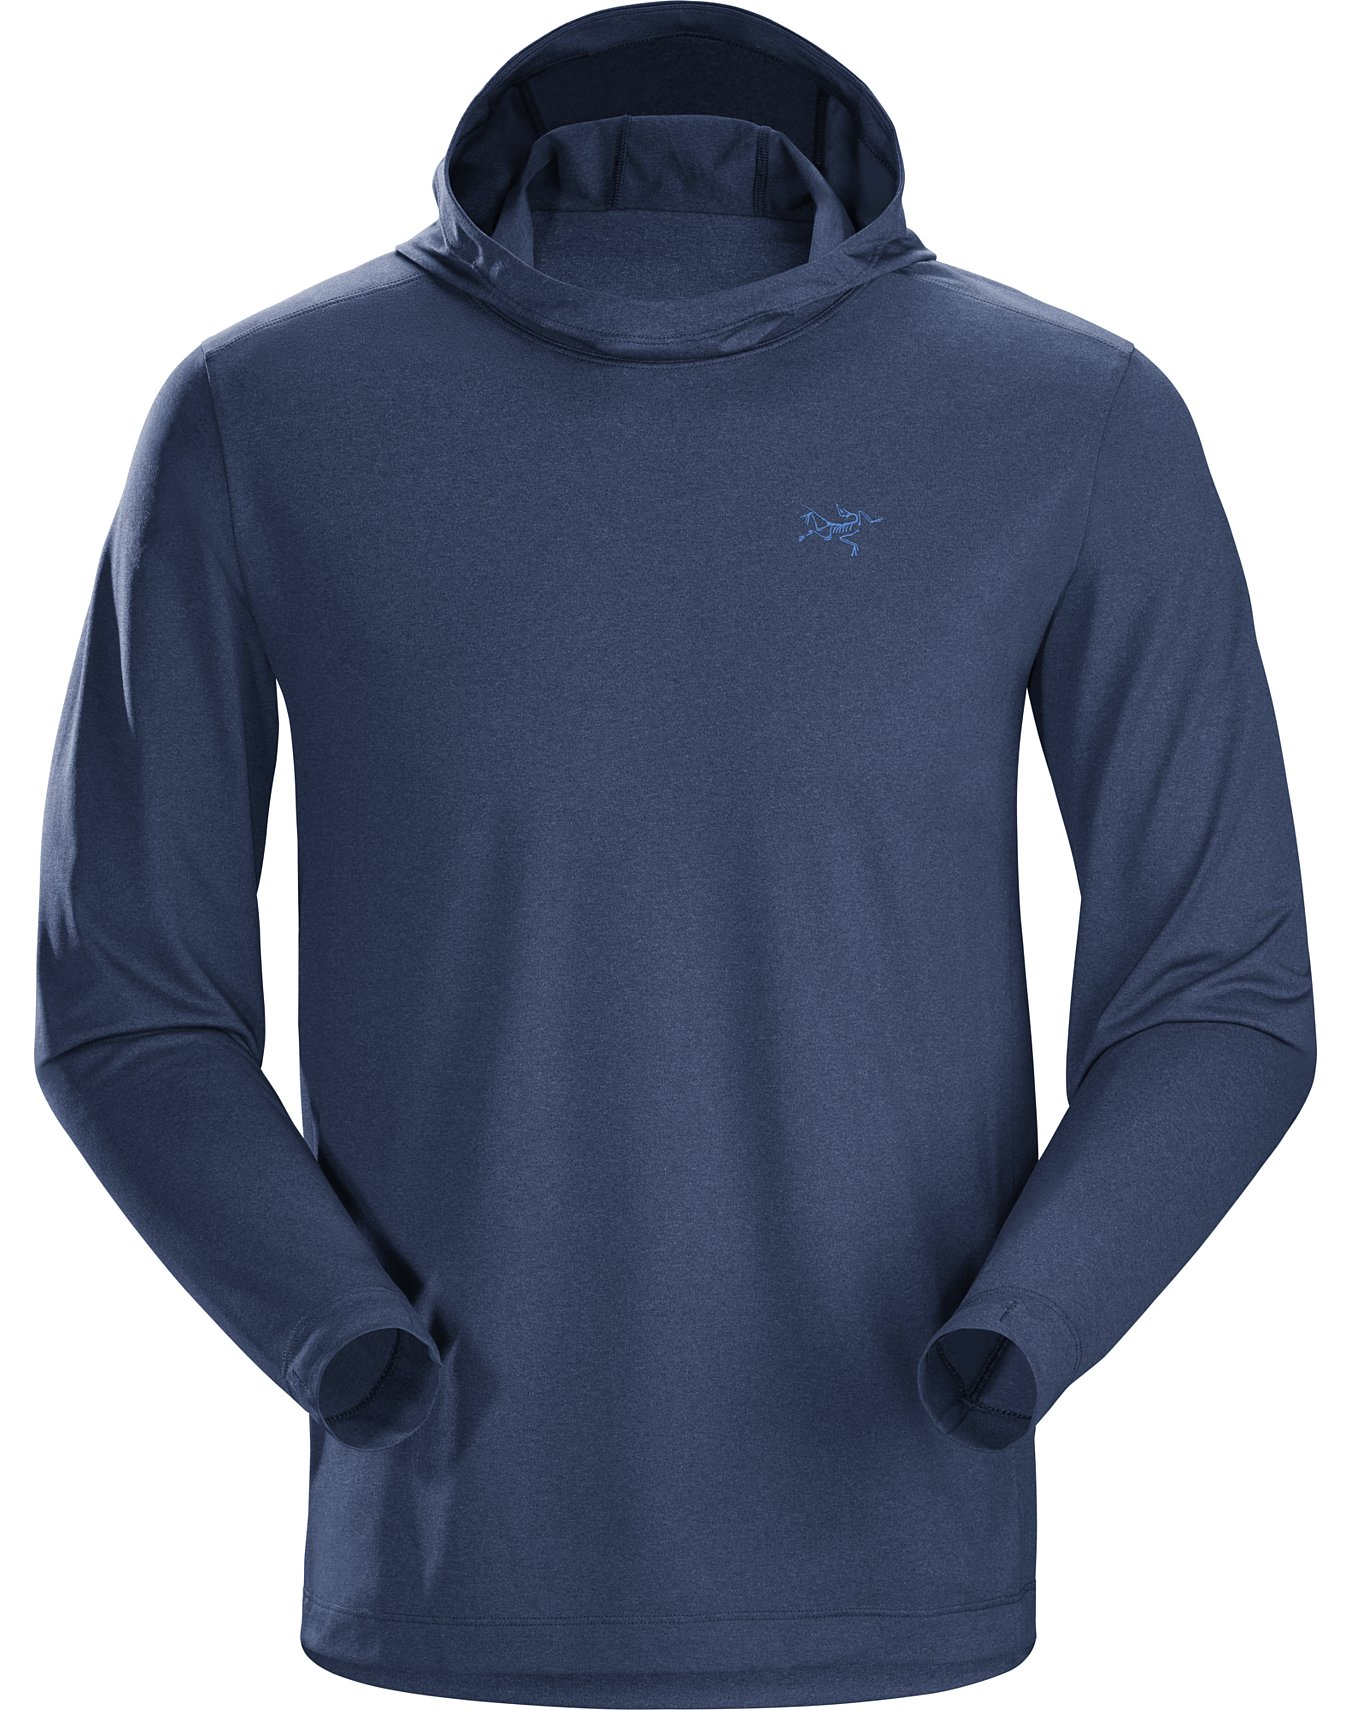 Performance technical light weight mountain bike hooded top hoody wicking layer